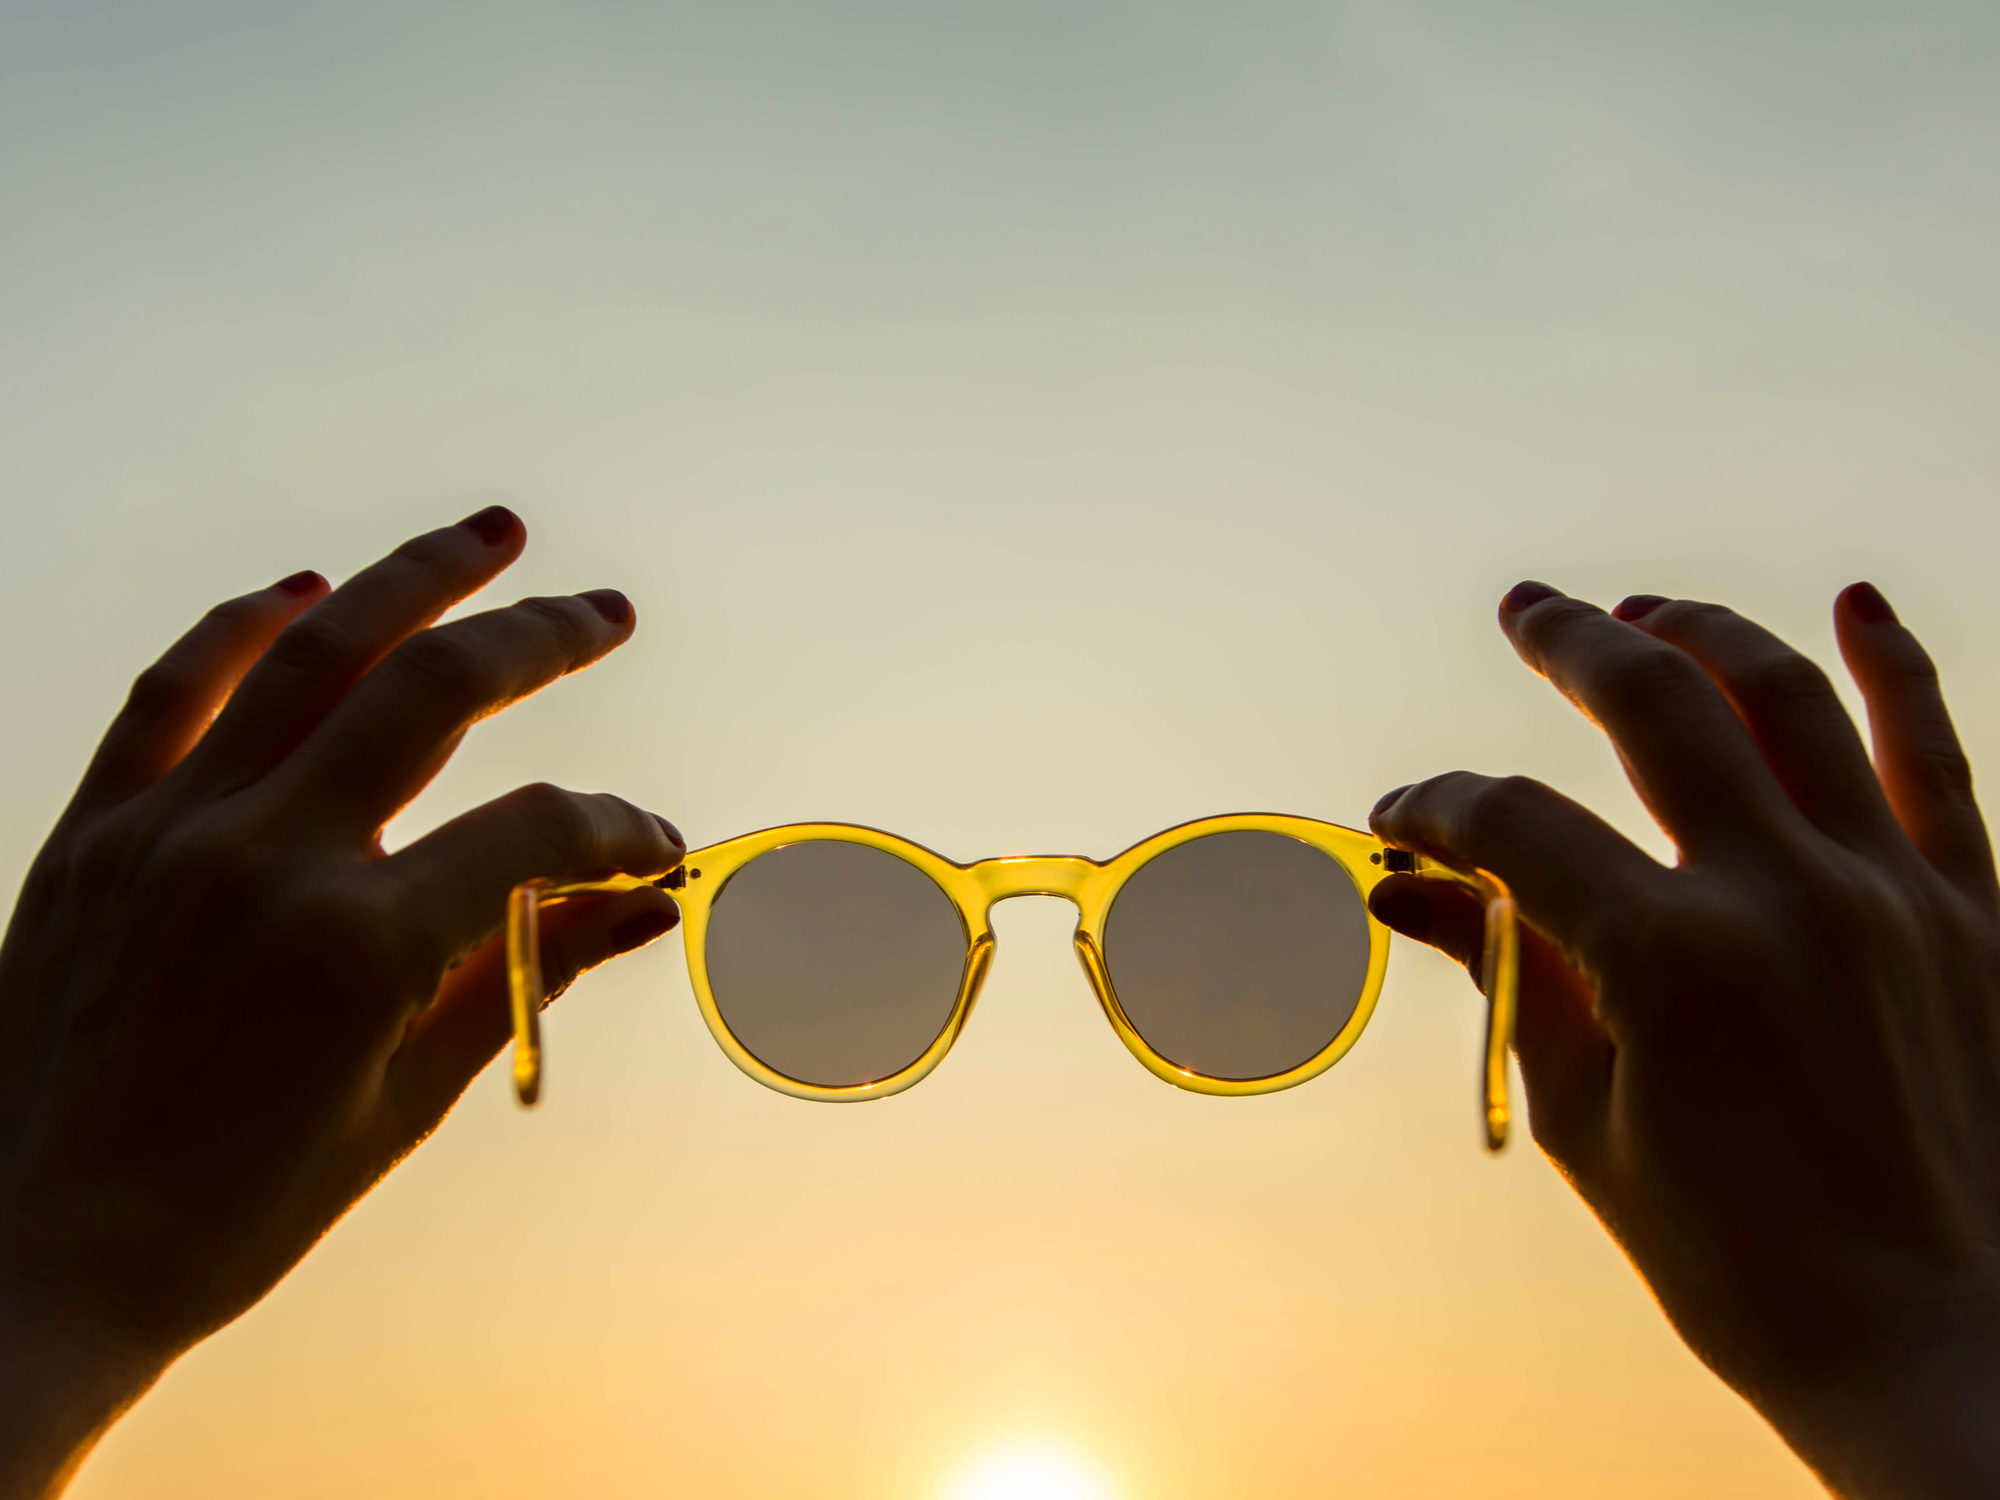 Eye Health During Dry and Hot Weather – How to Protect Your Eyes